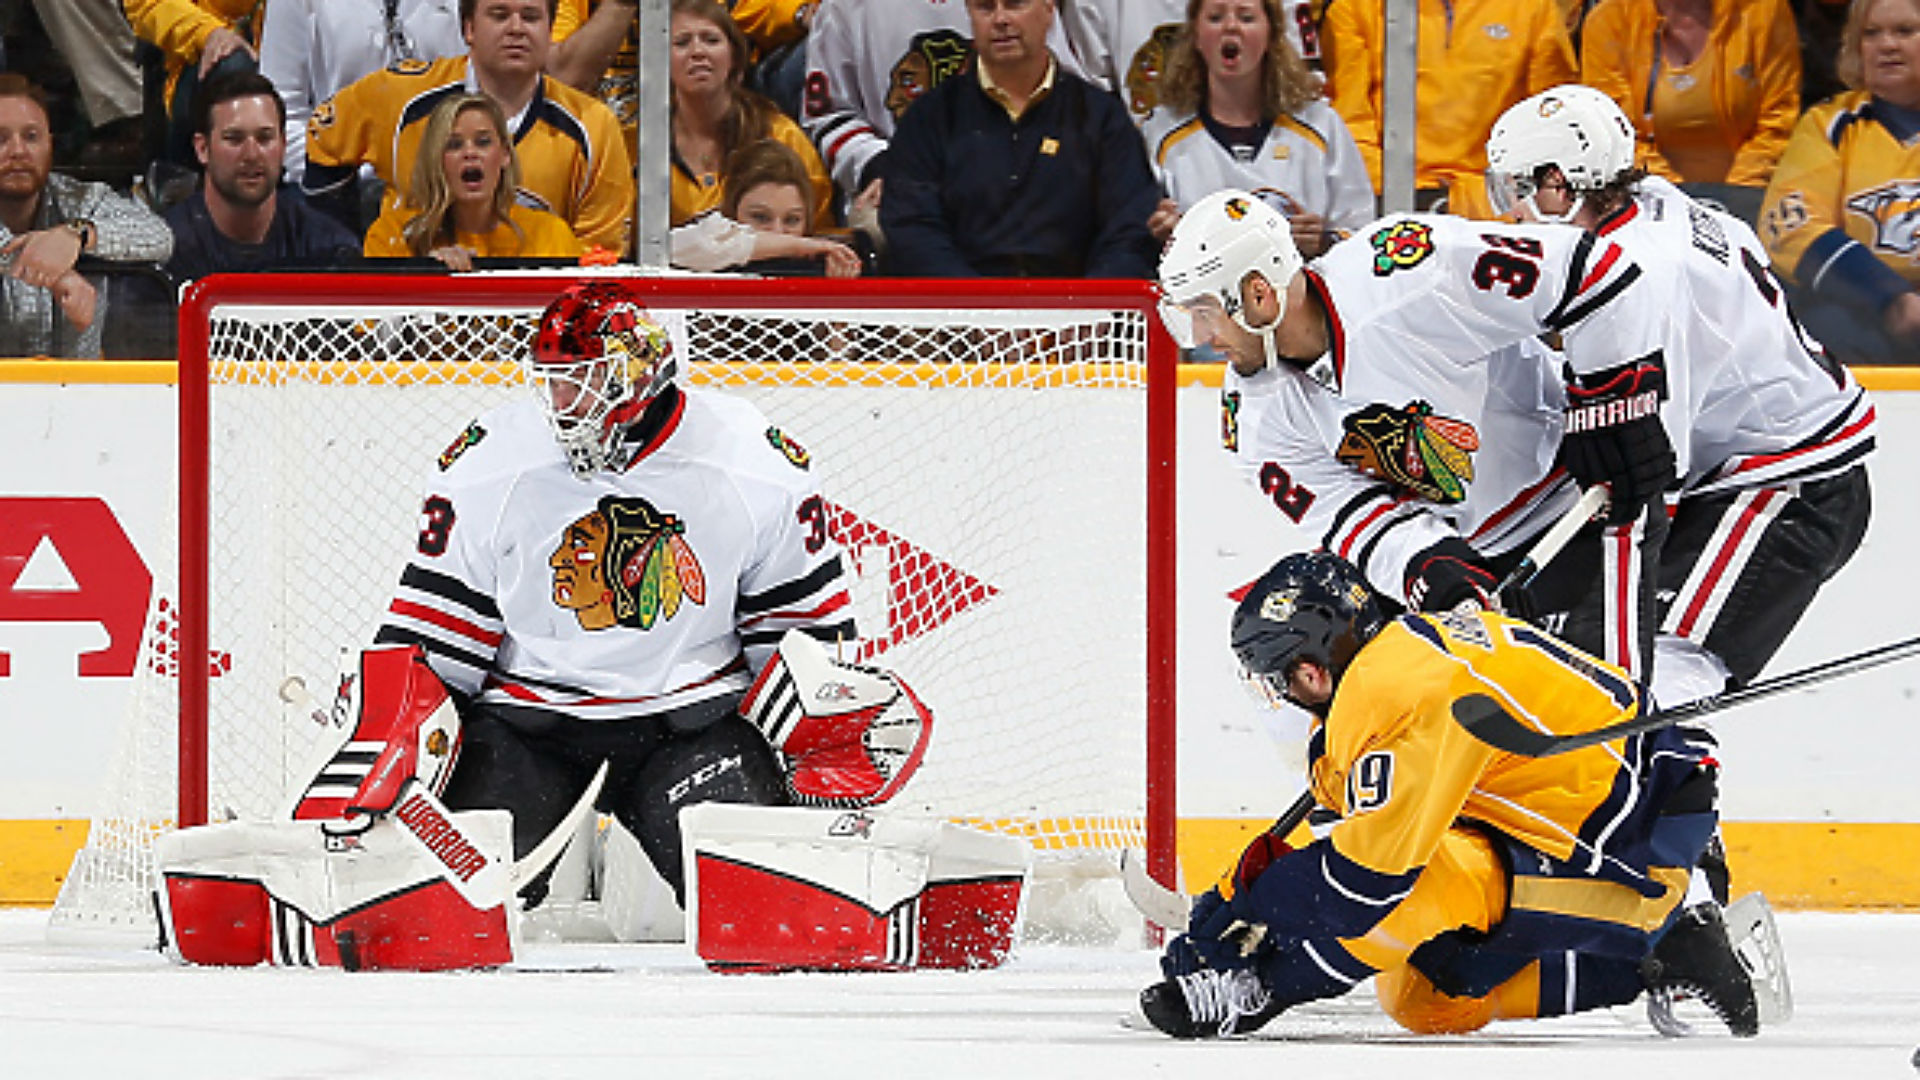 Sunday's NHL playoff odds and betting lines — Ottawa in must-win mode, Darling starts for Chicago